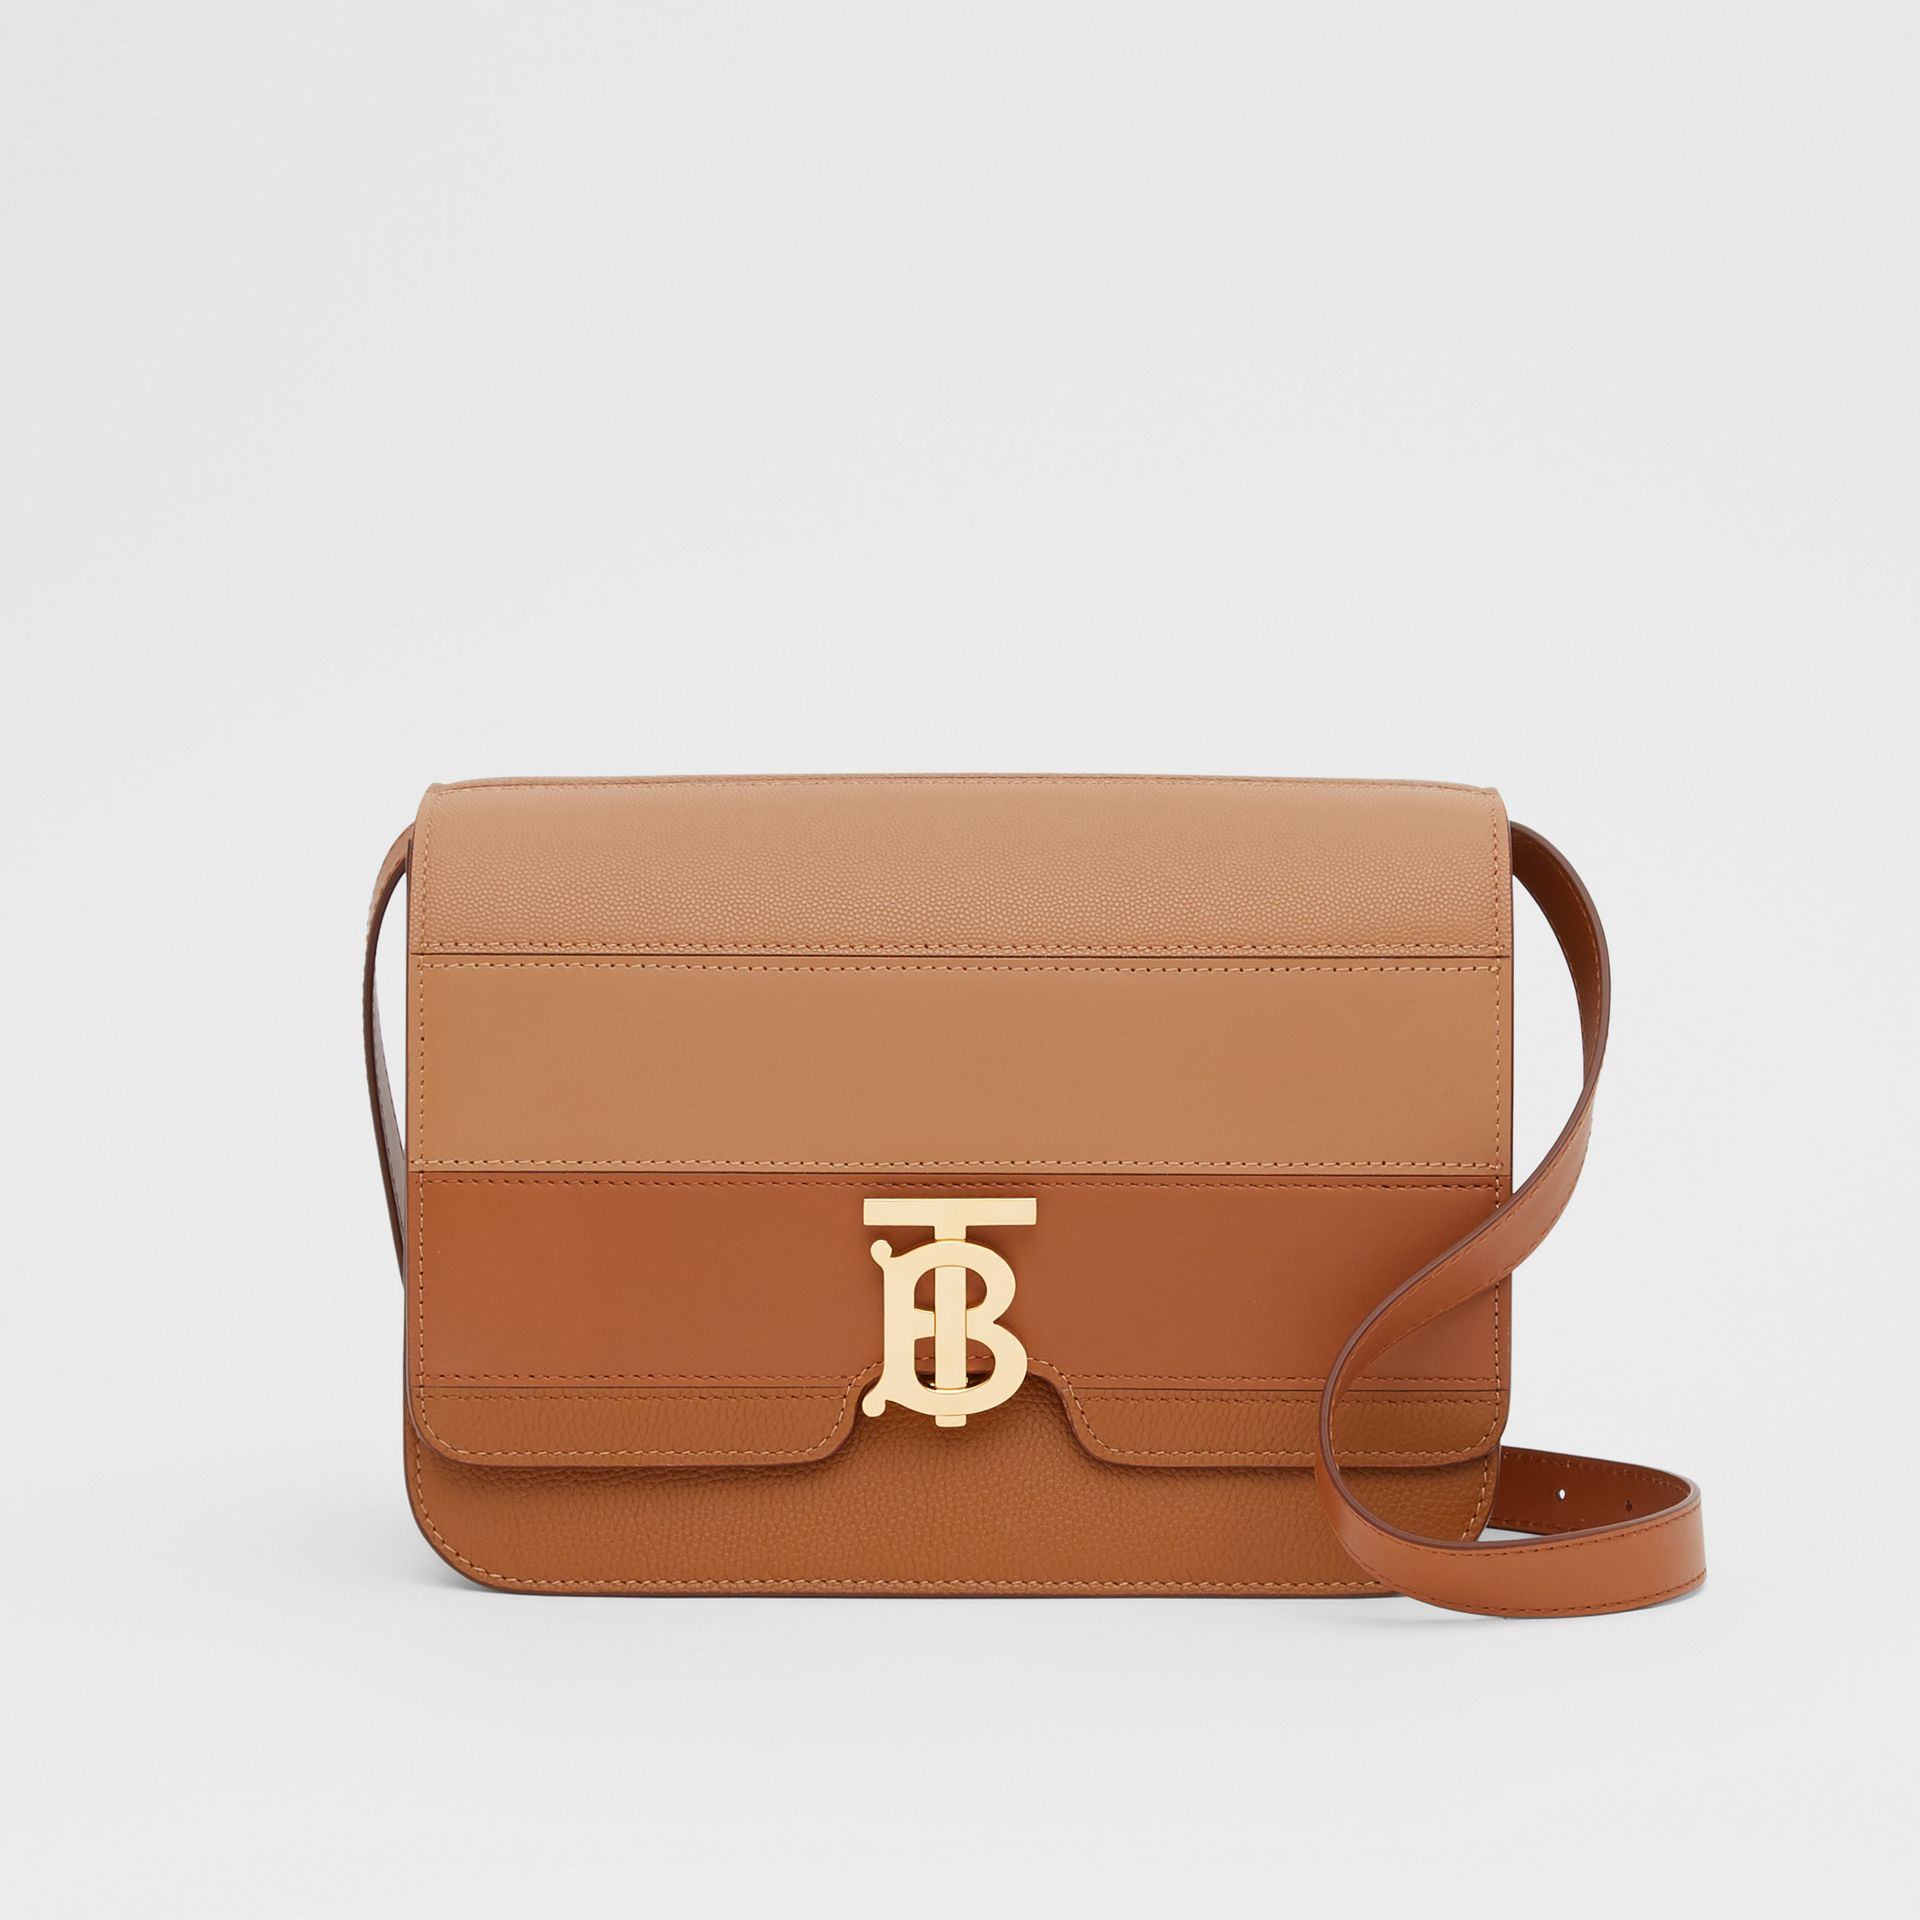 Medium Panelled Leather TB Bag in Maple - Women | Burberry - gallery image 0